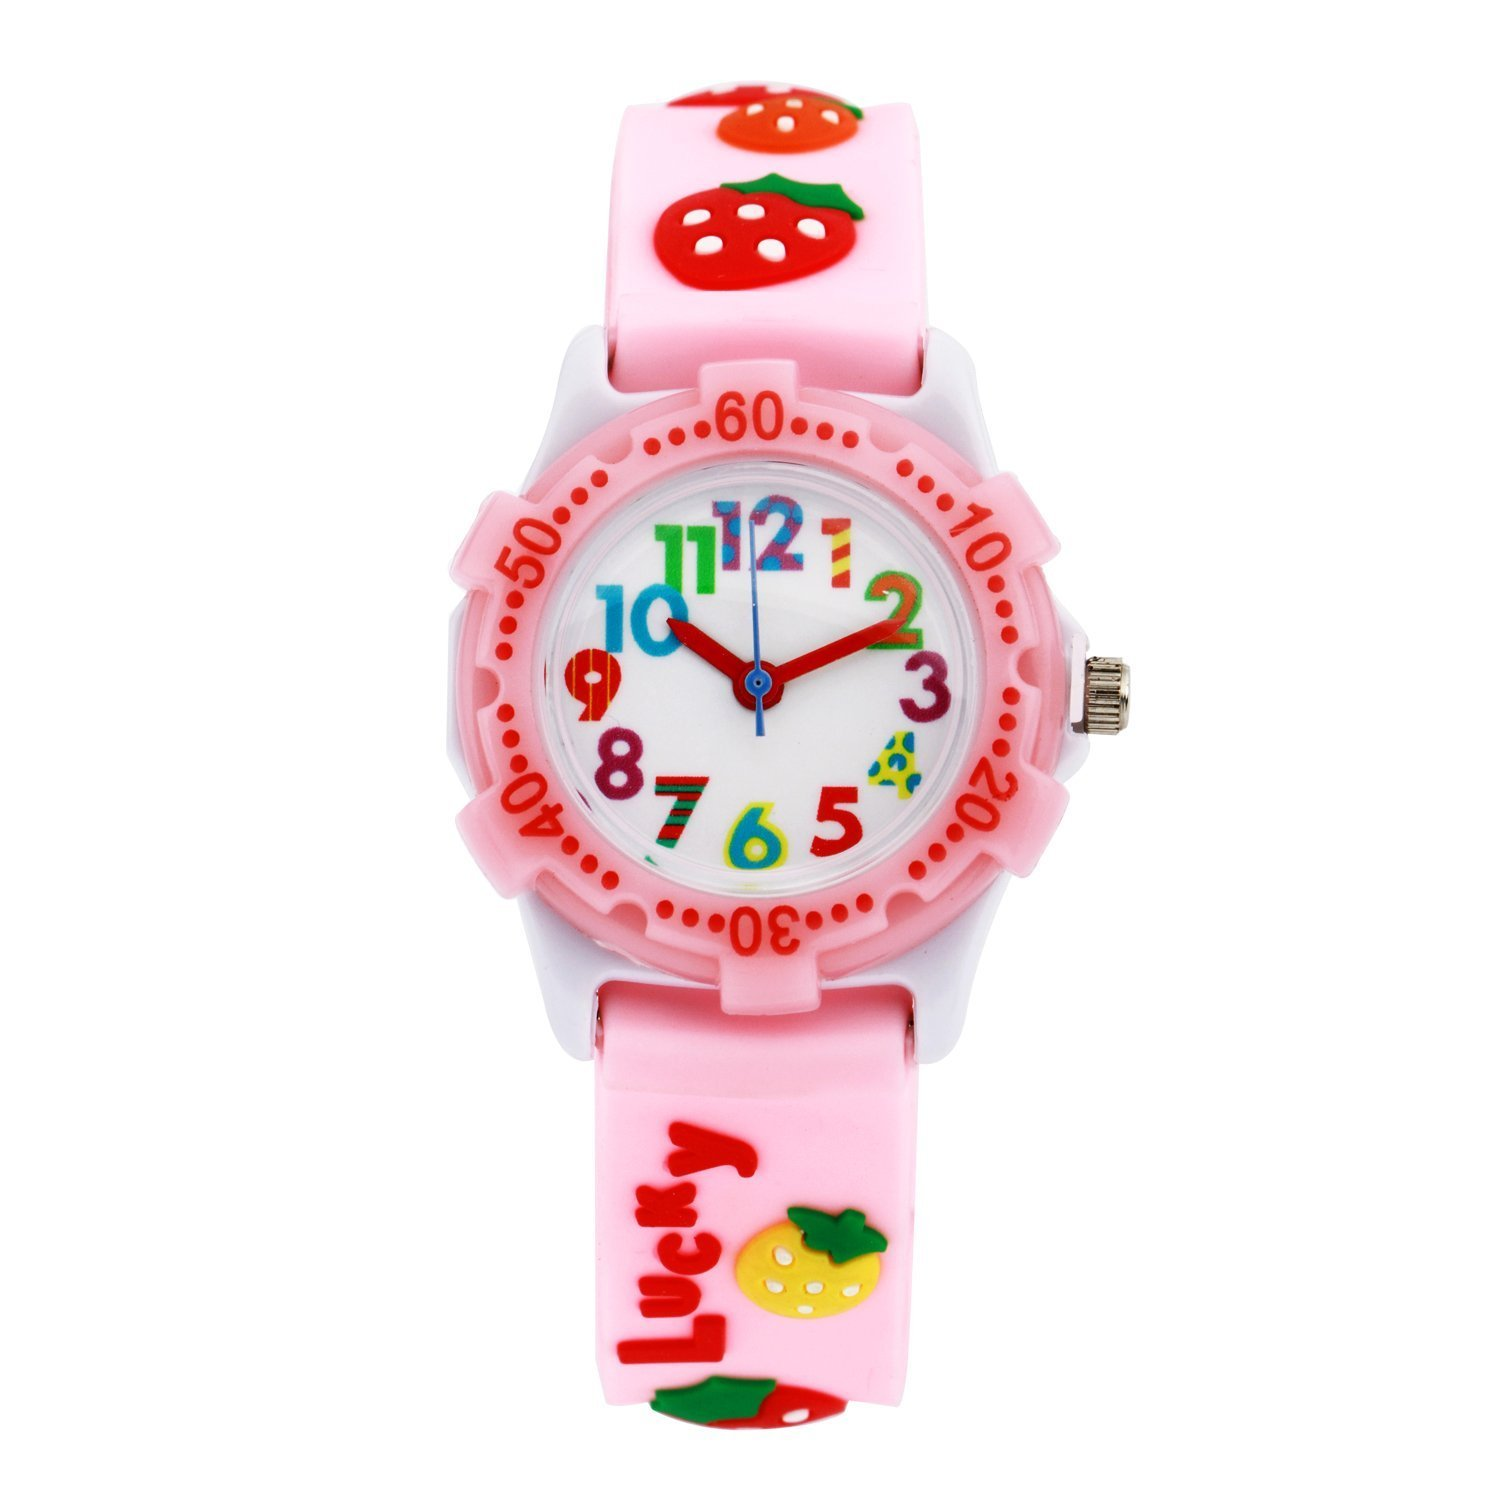 ParaCity Waterproof 3D Cute Cartoon Digital Silicone Wristwatches Time Teacher Gift for Little Girls Boy Kids Children (Pink Purple Strawberry)